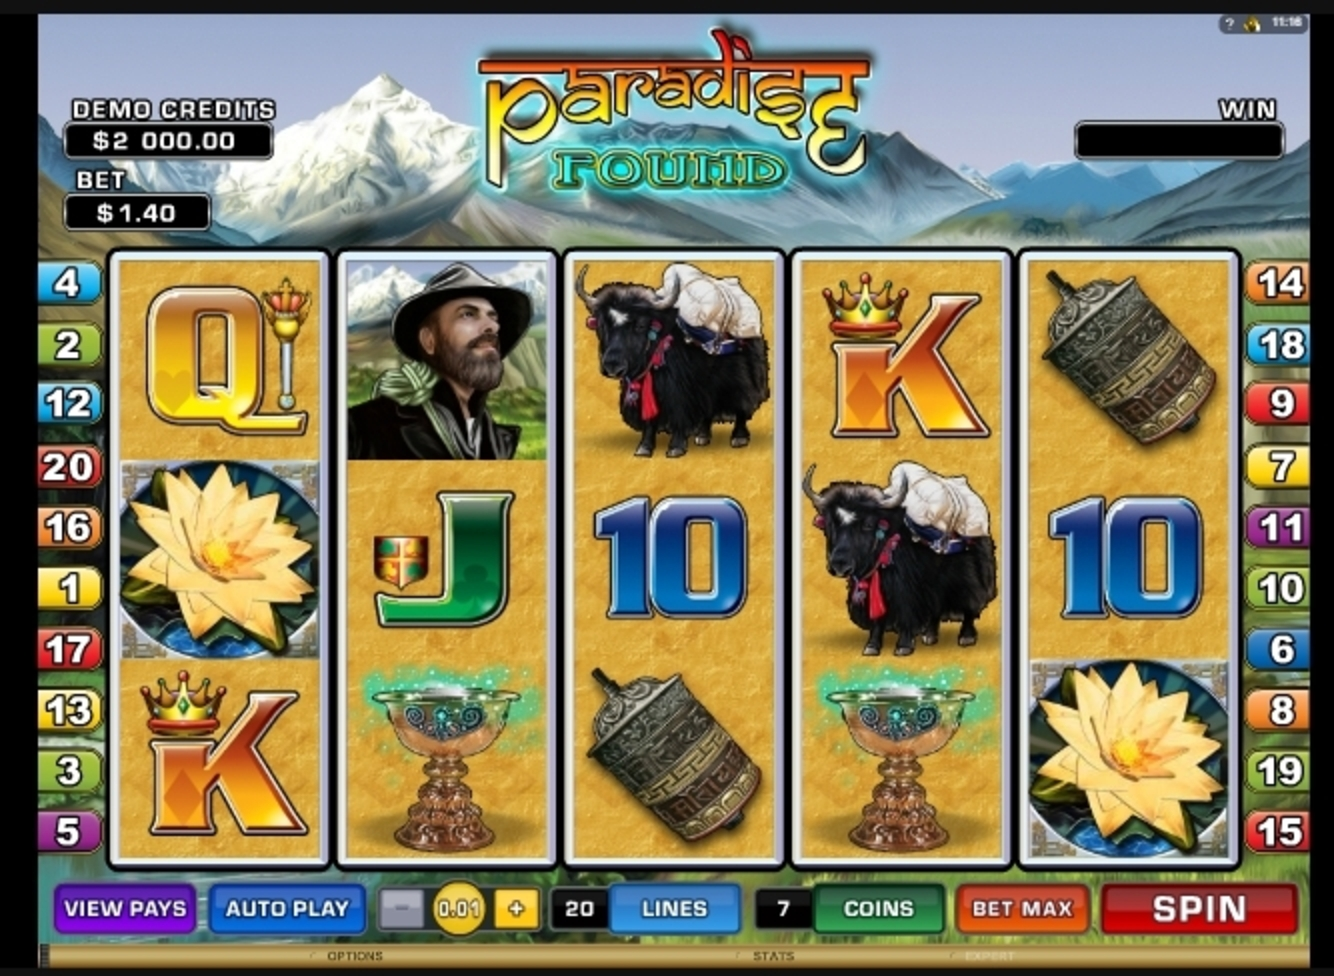 Reels in Paradise Found Slot Game by Microgaming